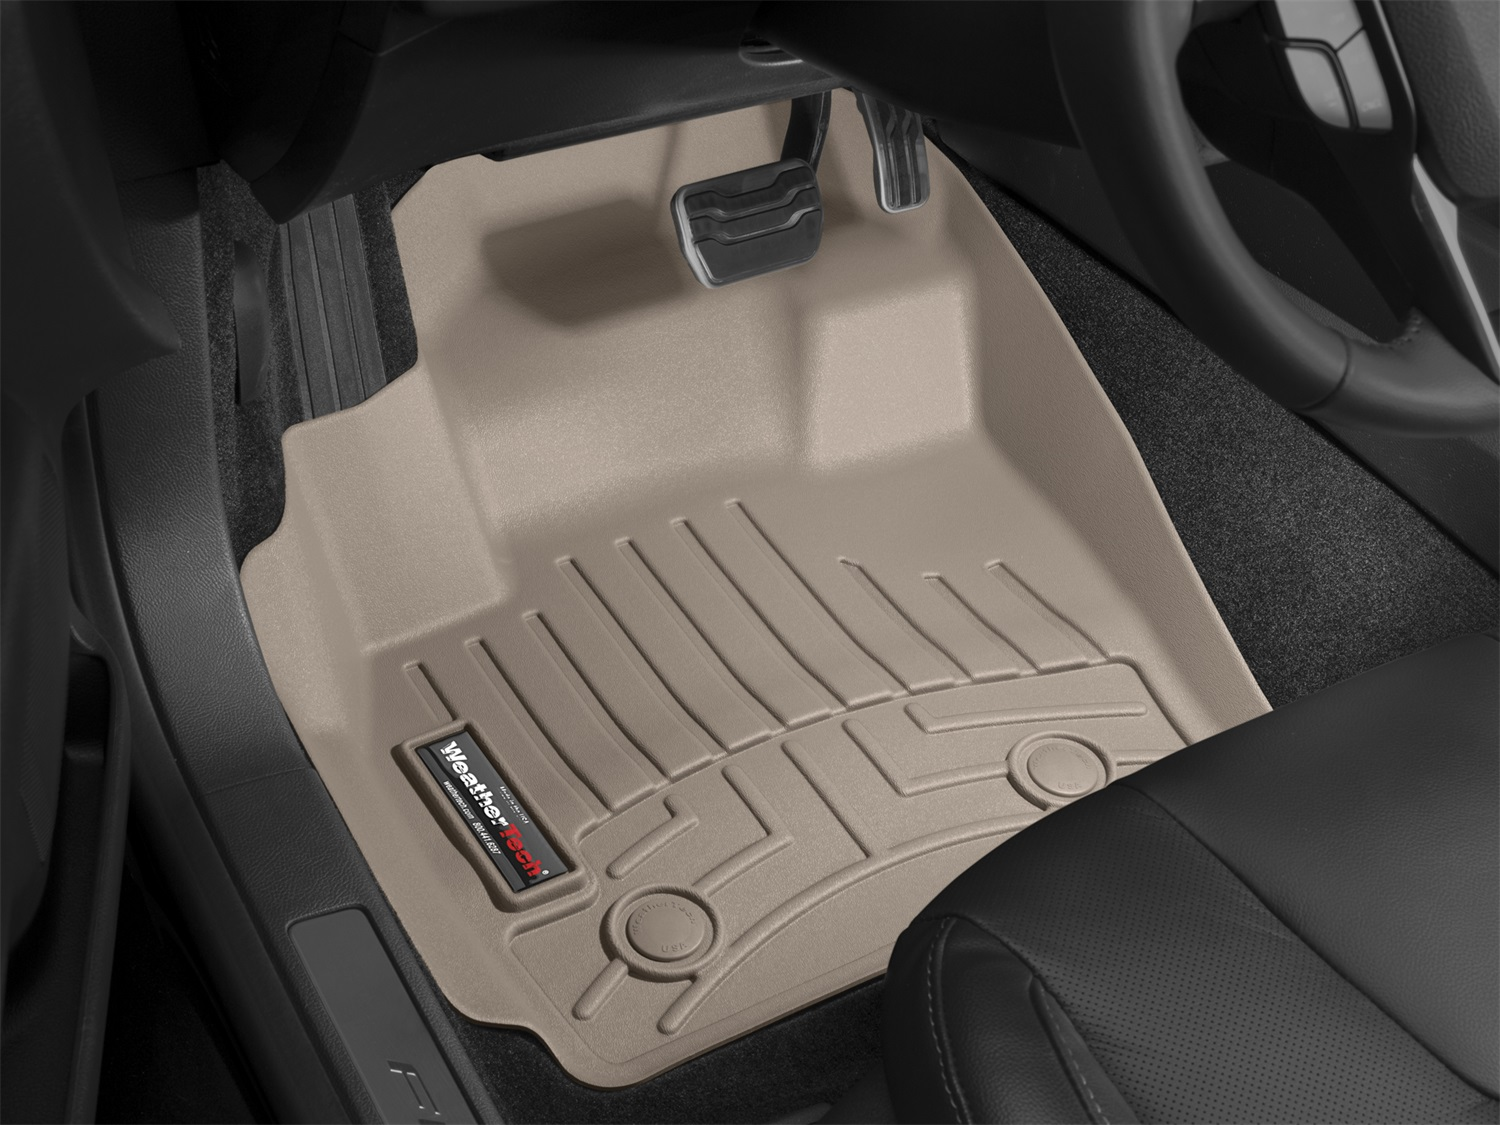 mats floor concept floors walmartweathertech tech for weathertech images formidablether sale weather conceptthertech trucks formidable